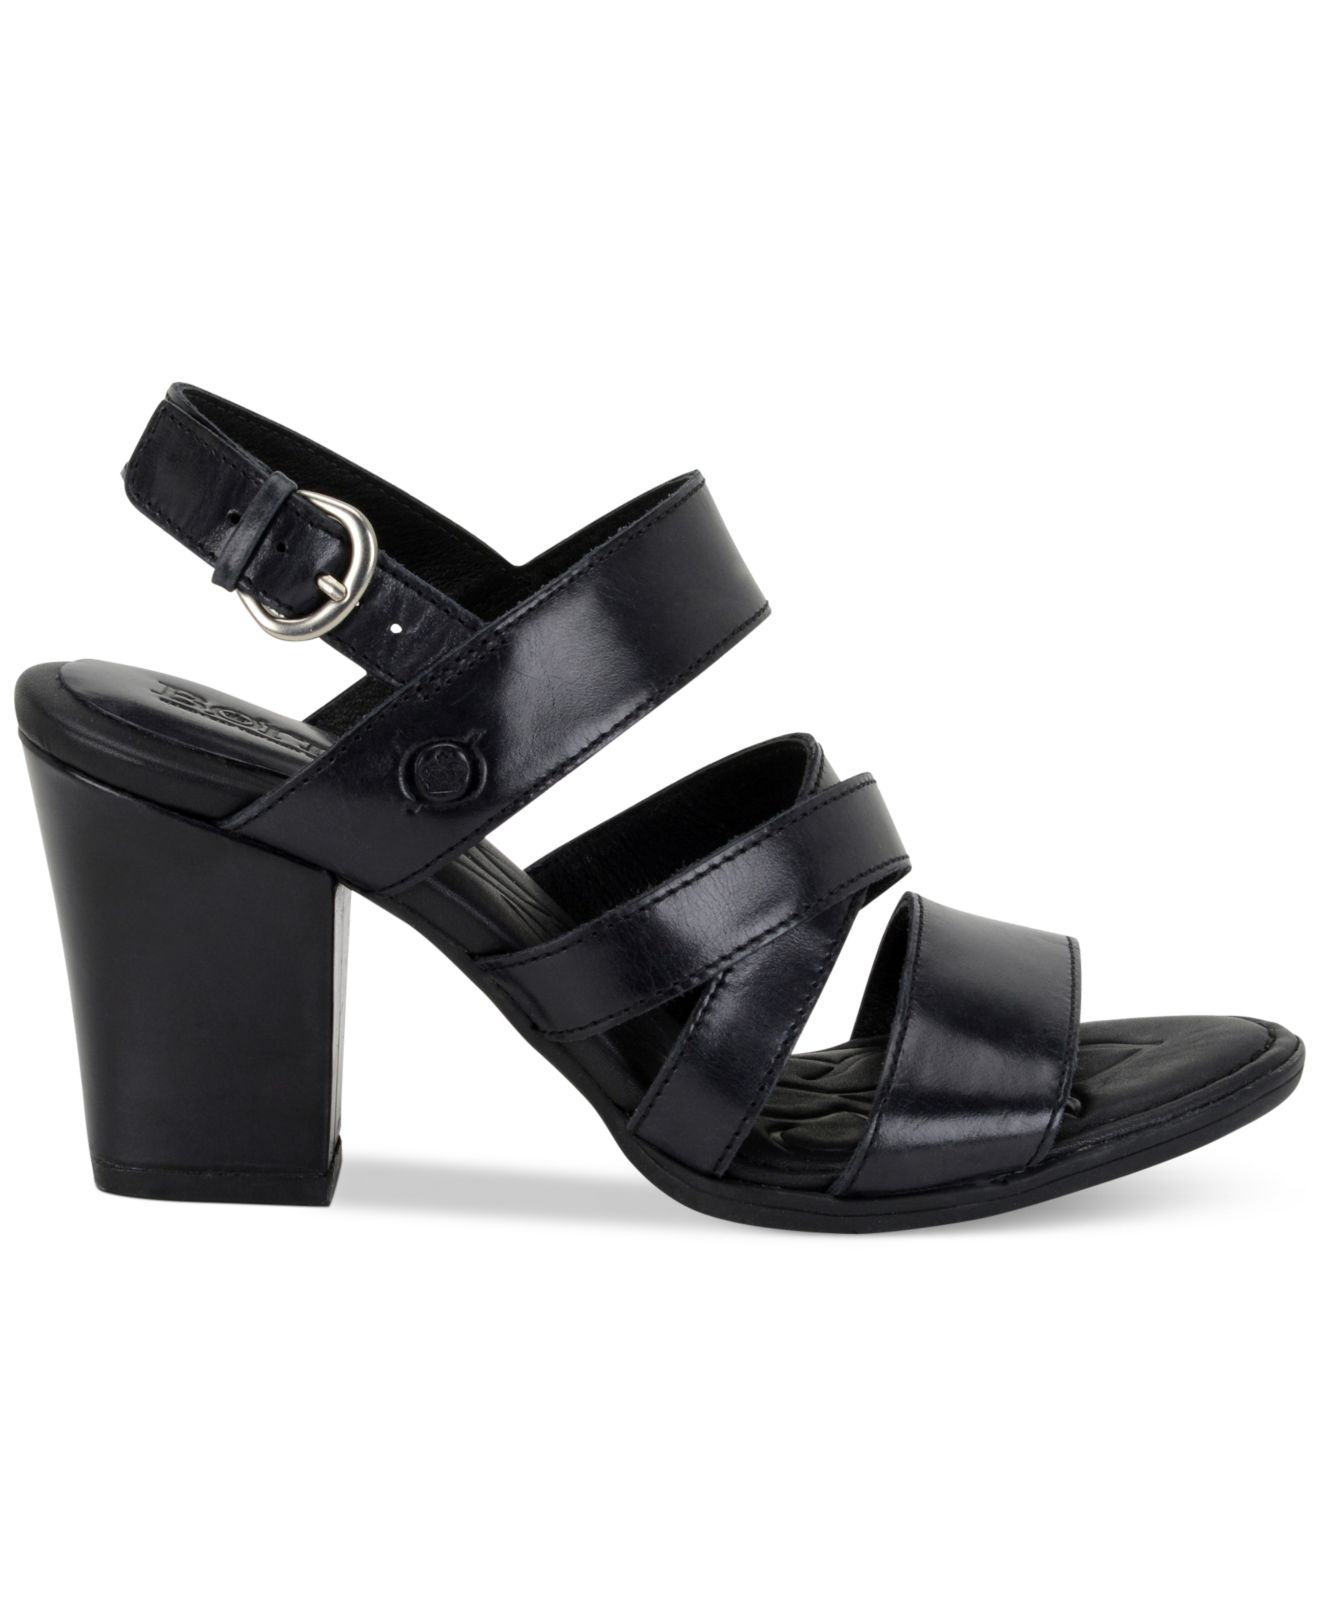 093ee1d51f19 Lyst - Born Marylu Dress Sandals in Black